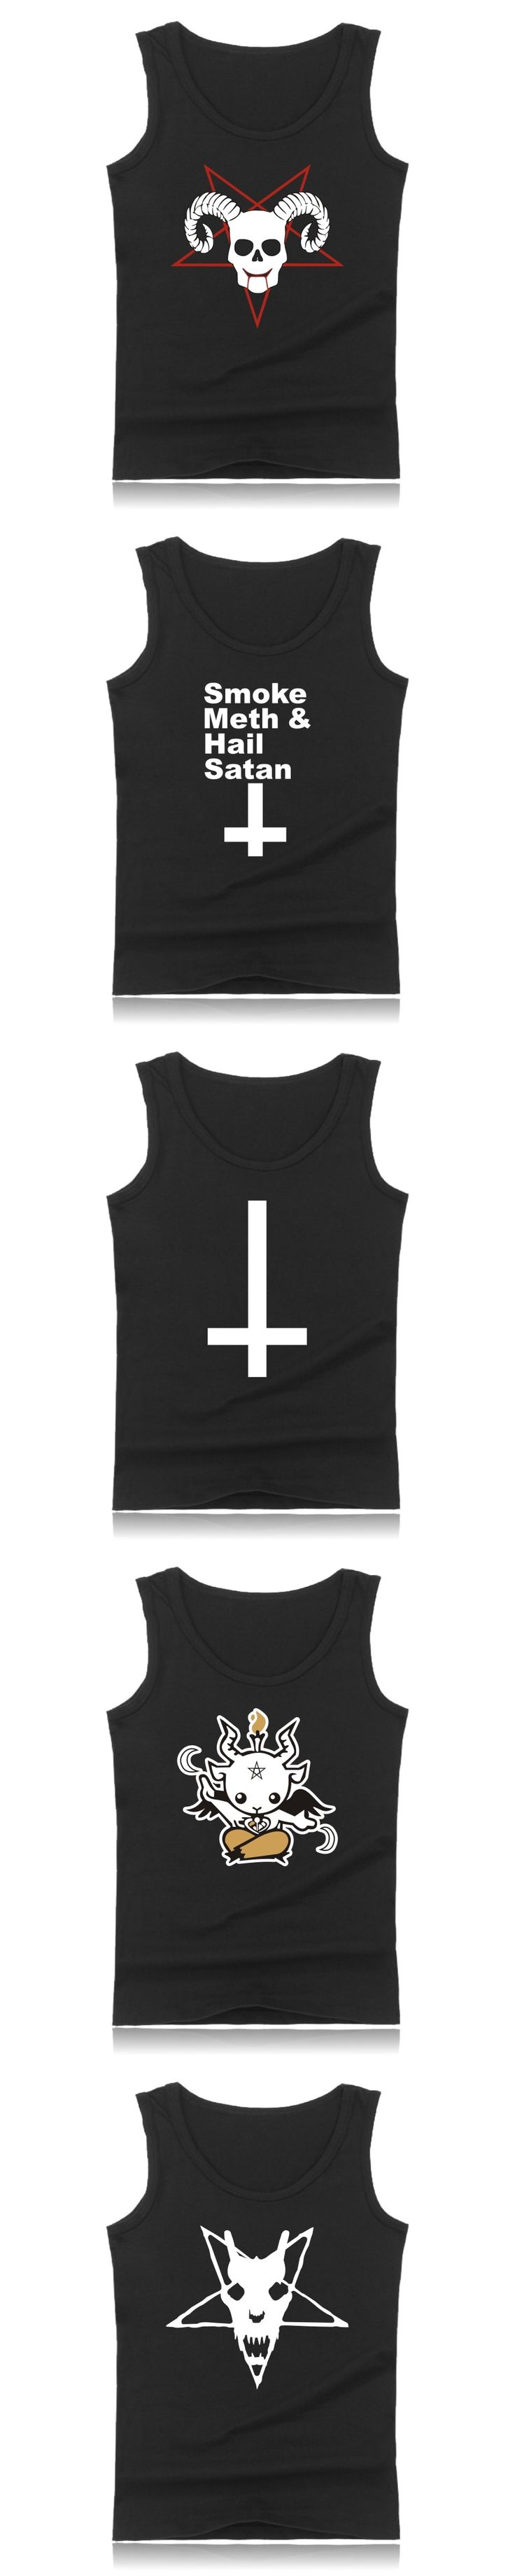 Satan Cartoon Casual Cotton Plus Size Muscle Tank Tops For Men Summer Vests And Cool Character Bodybuilding Tank Tops Men